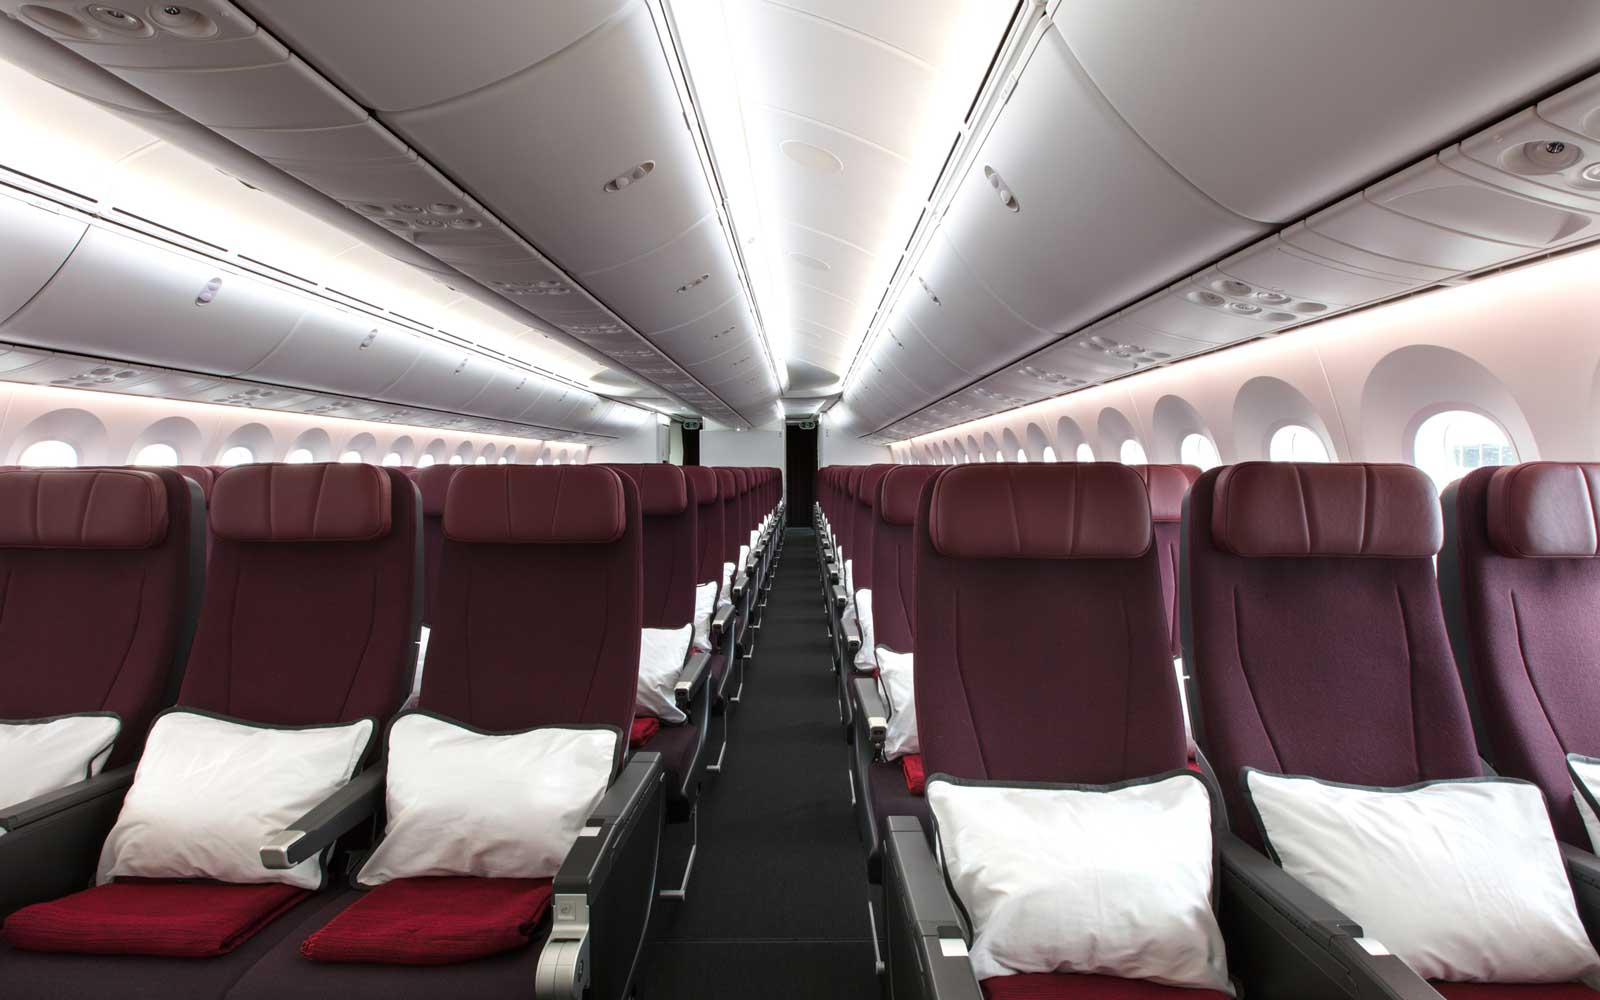 17 Ways Qantas Is Going to Make a 17-hour Flight Comfortable for Passengers